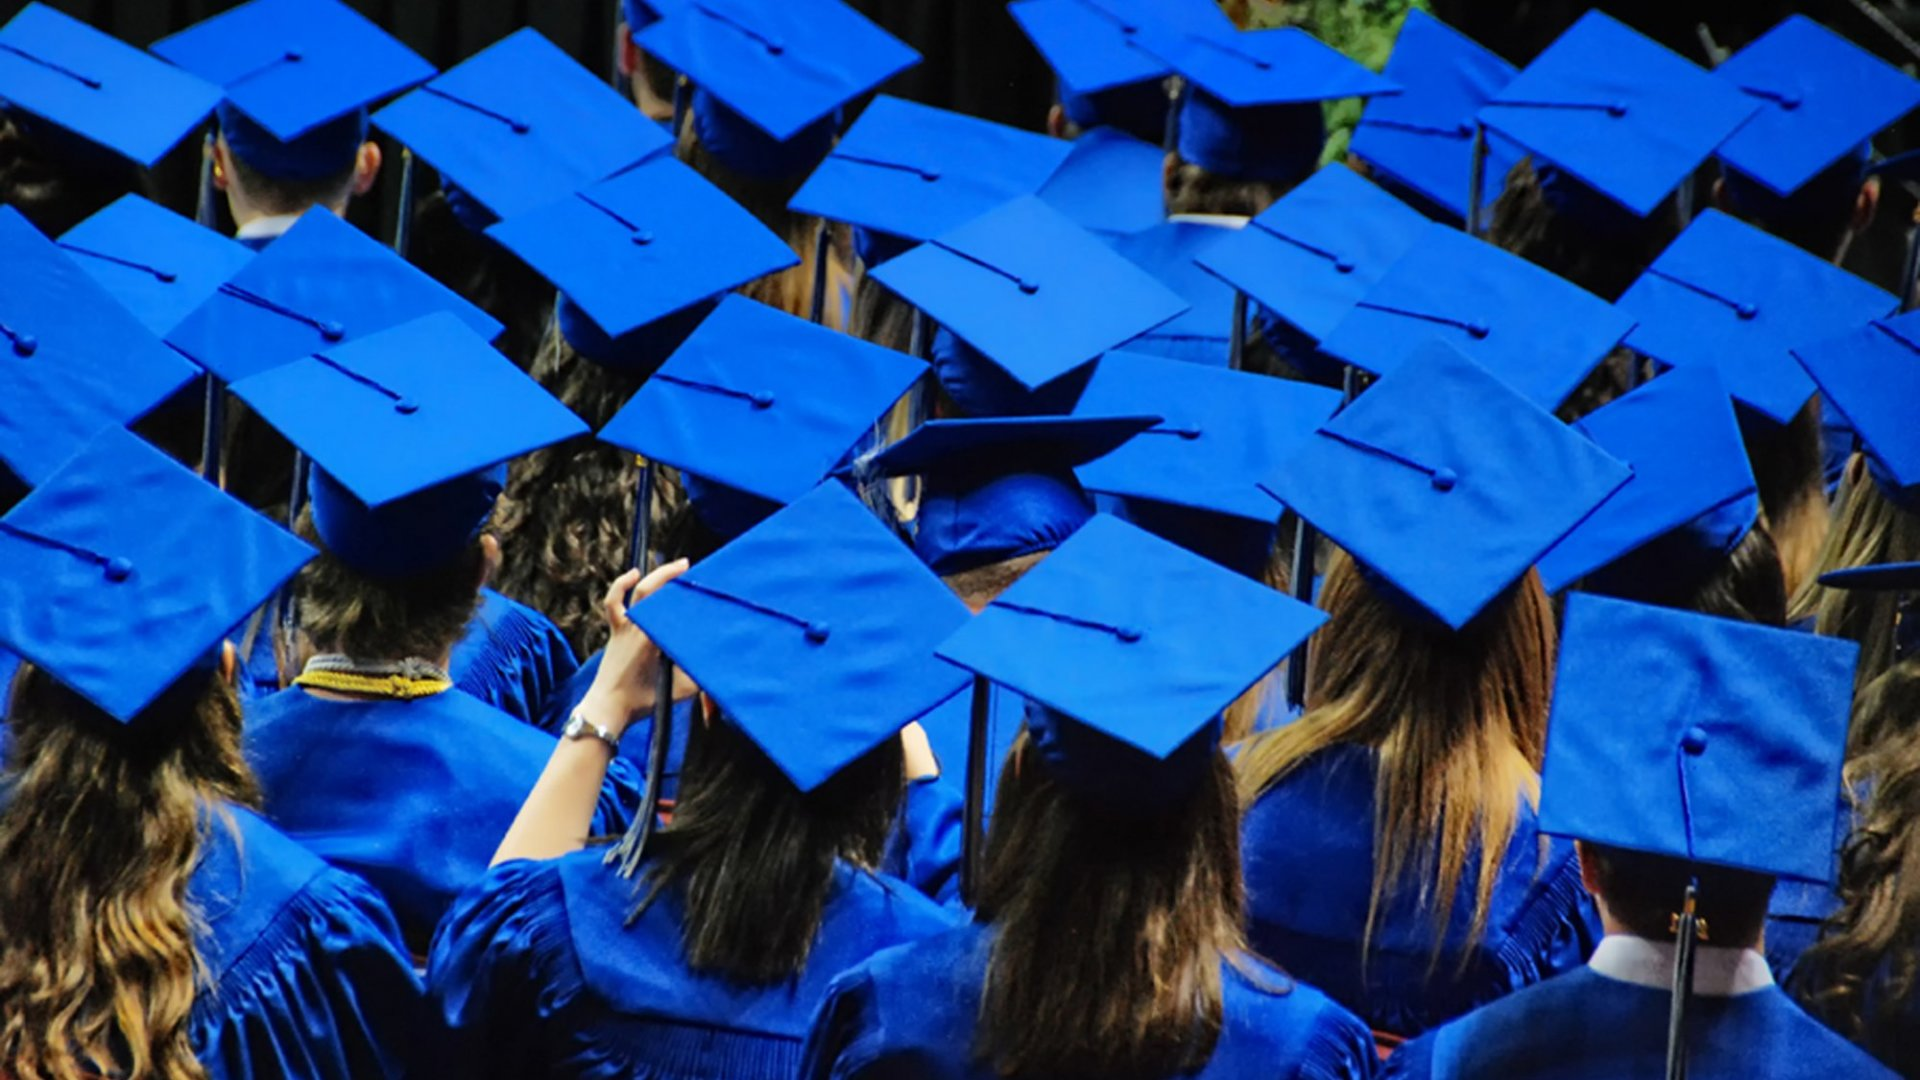 Memo to Grads: Life's Too Short to Be a Bore (or Chore)